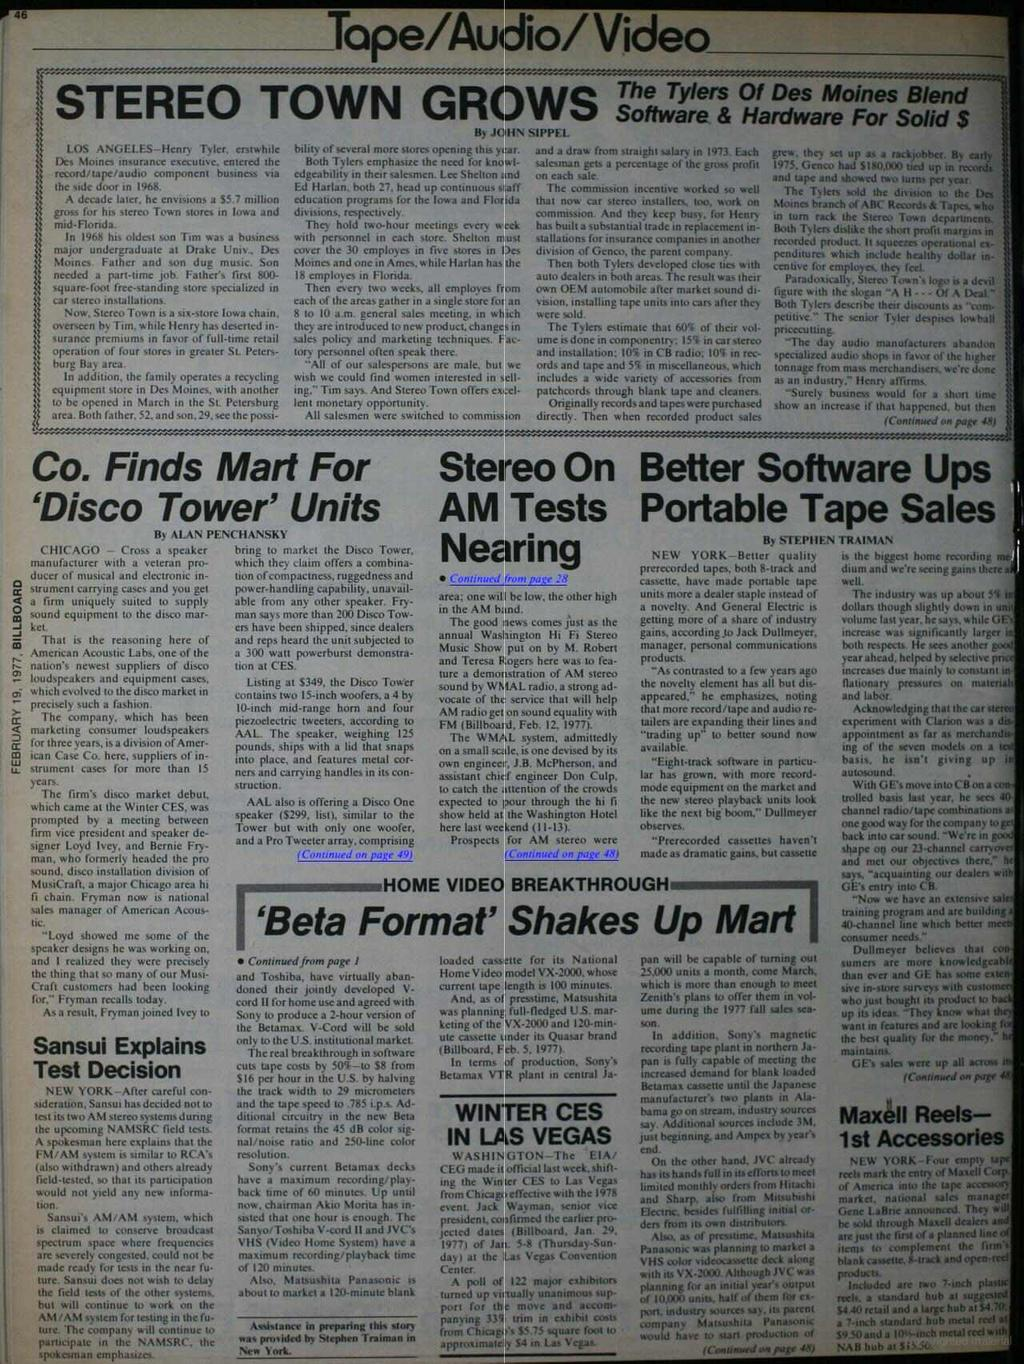 Tope /Audio /Video STEREO TOWN GROWS The Tylers Co LOS ANGELES -Henry Tyler. erstwhile Des Moines insurance executive- entered the record /tape /audio component business via Me side door in 1968.